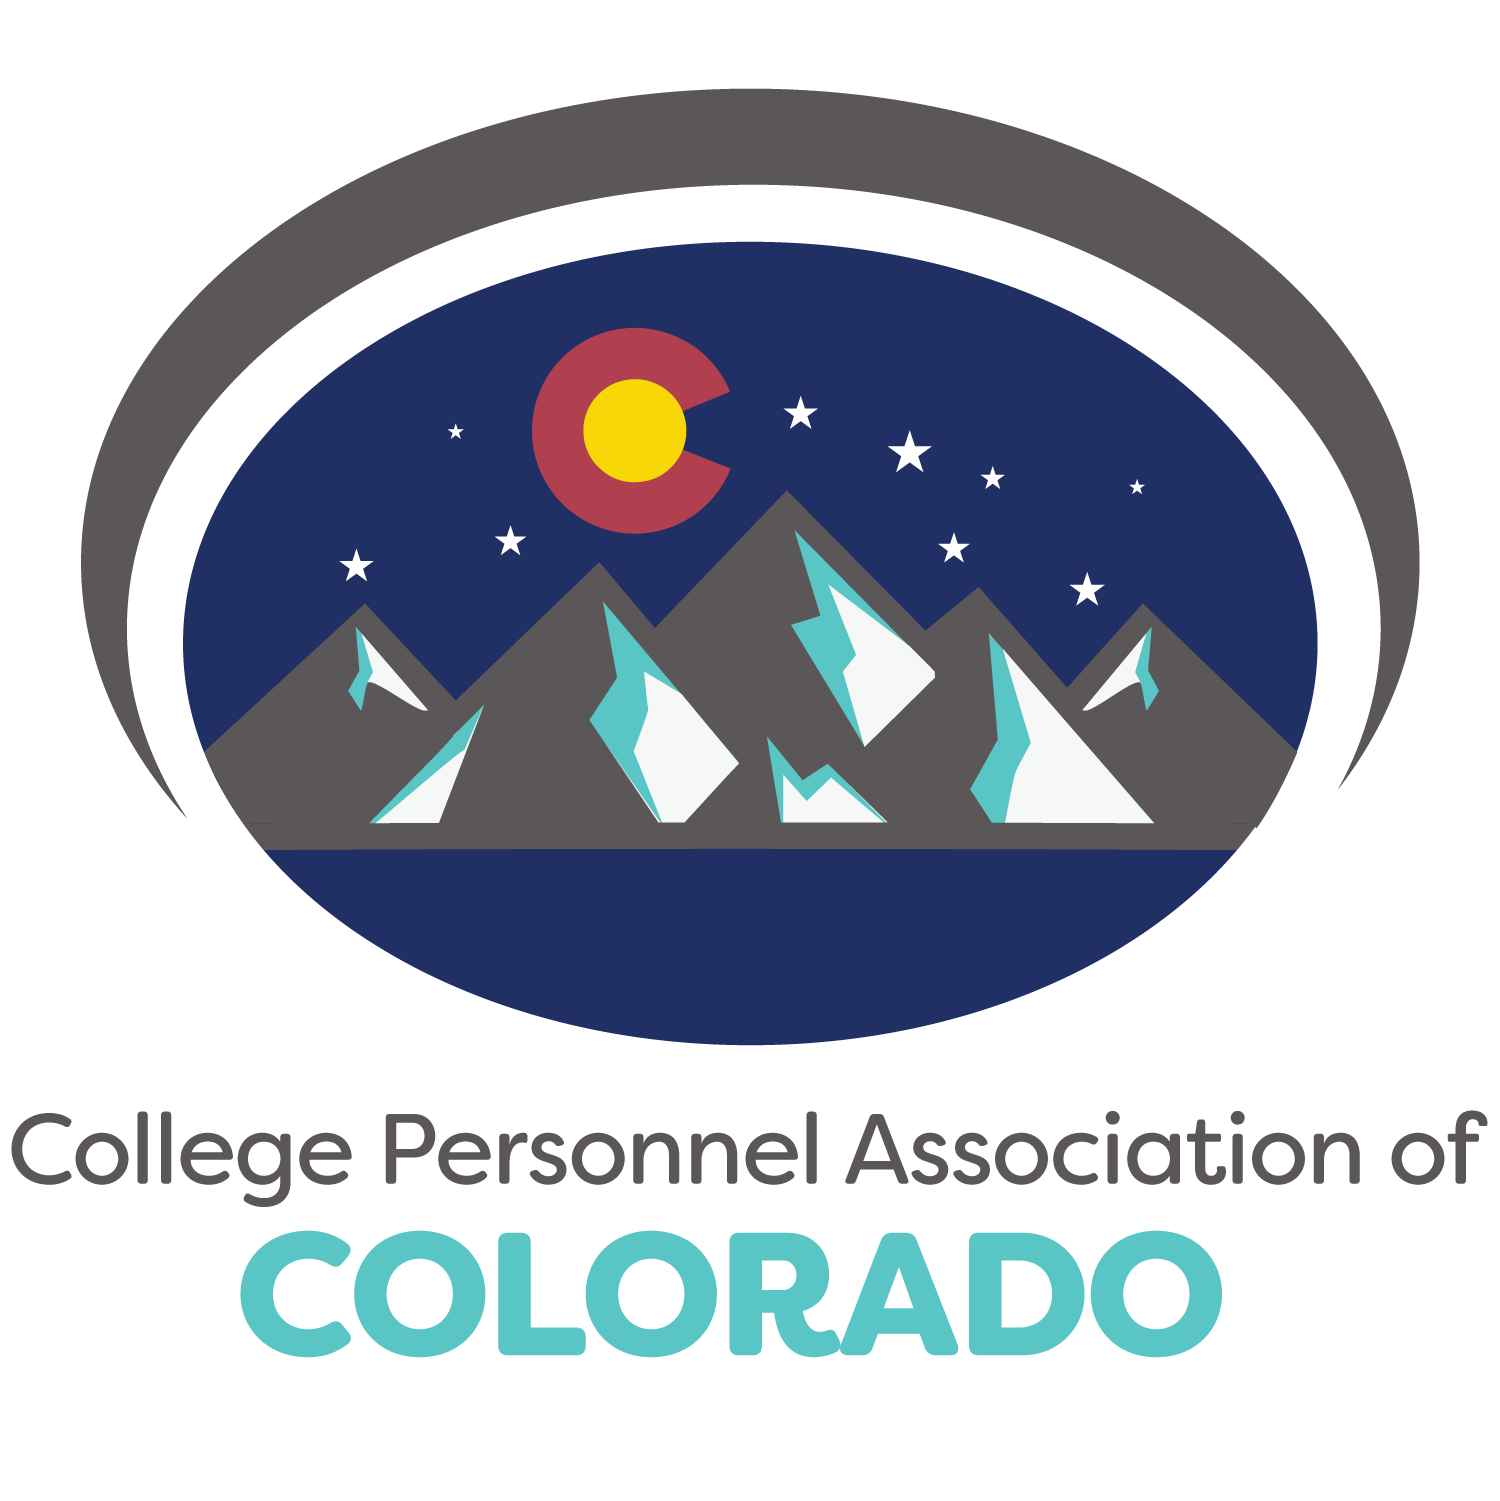 College Persoonel Association of Colorado logo featuring a mountain range and C flag symbol